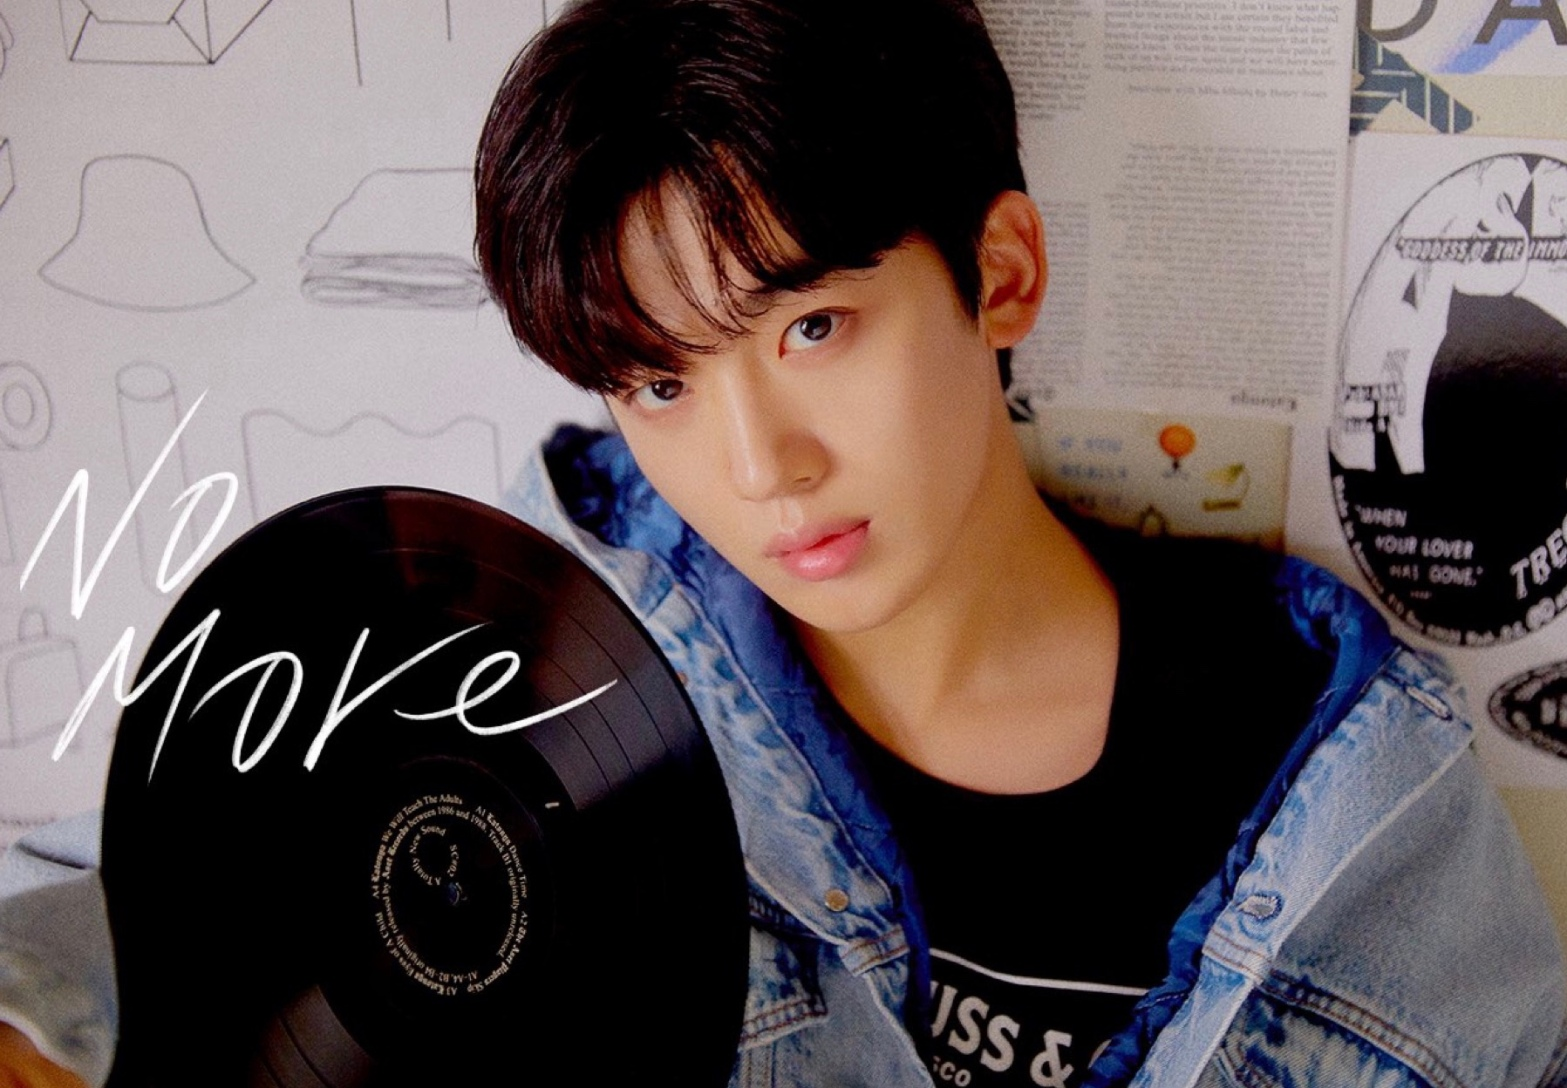 Hero Kim Yo Han's 1st digital single 'No More' Concept Image #3